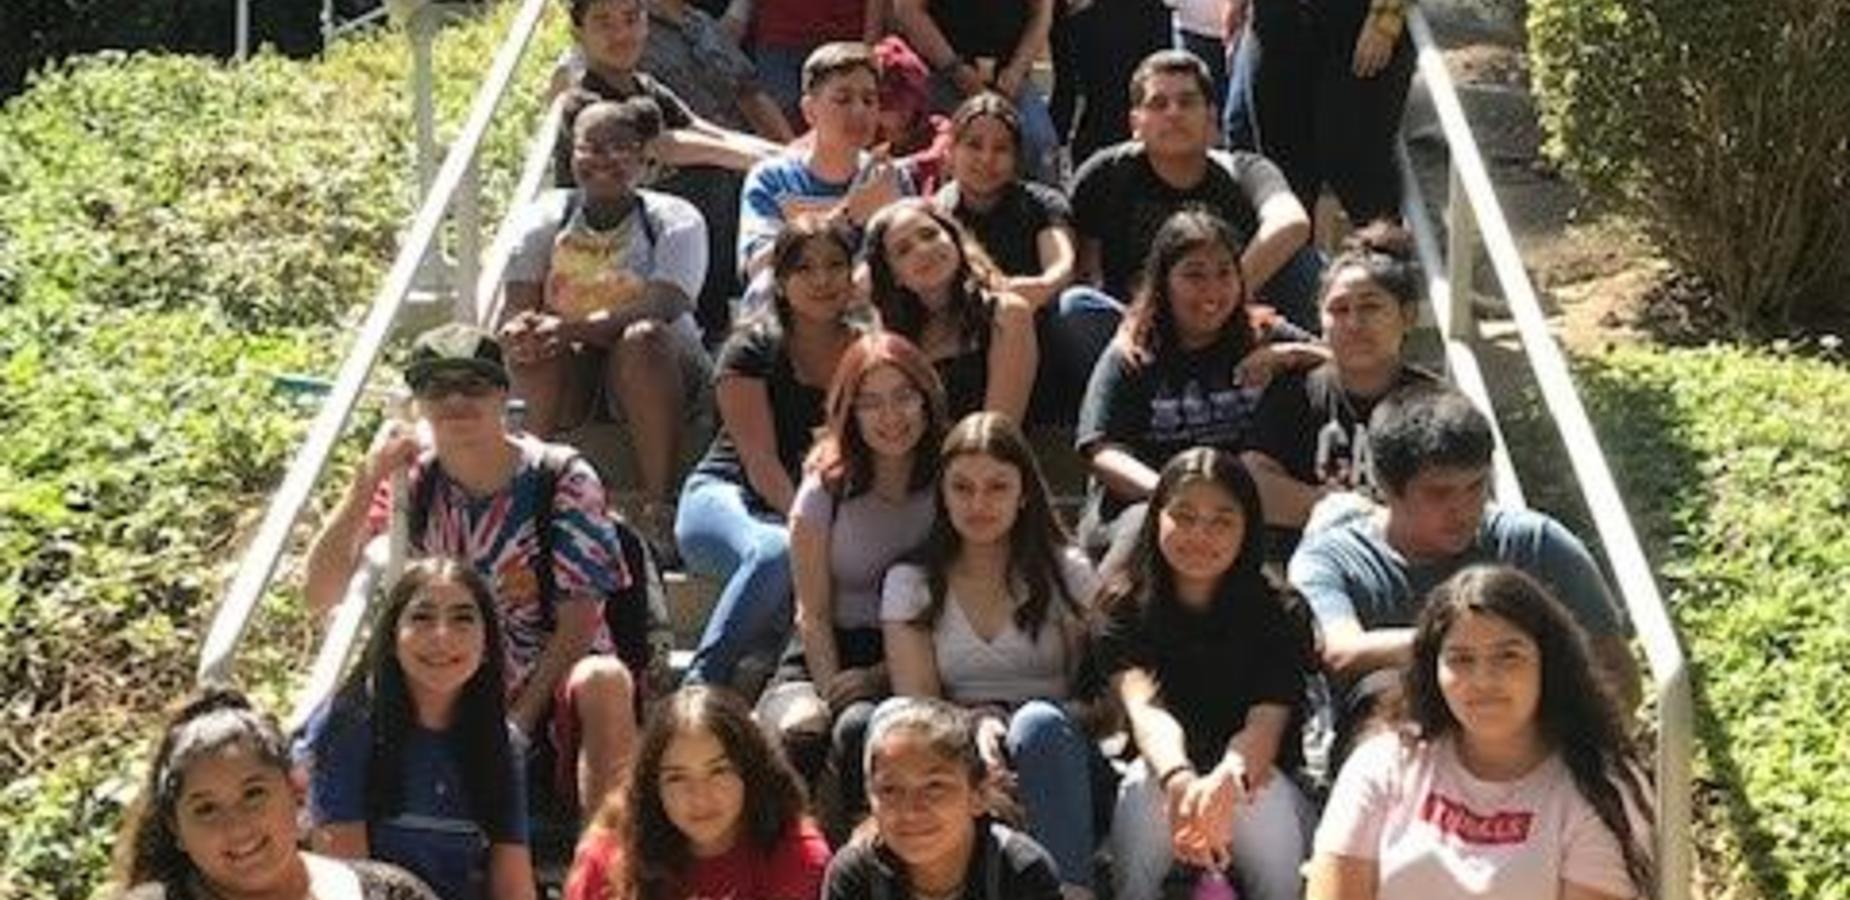 VAHS and SEEO students took a field trip to Cal Poly Pomona's Bio trek an educational experience that emphasizes the need to share knowledge, values, and behaviors that support sustainability on a finite Earth. #proud2bepusd